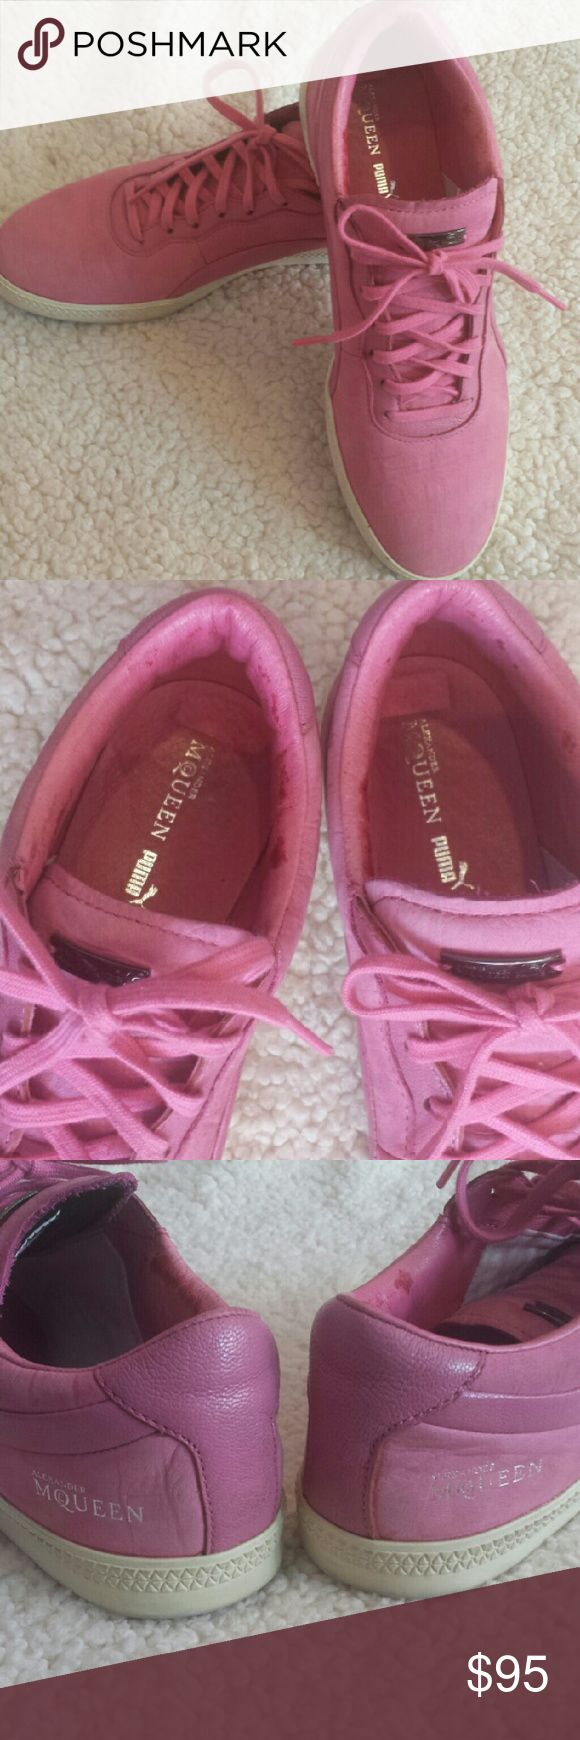 Alexander McQueen x PUMA Sneakers Pink leather and suede sneakers by McQueen for PUMA. These are in good condition, no outer skuffs, no tears, rubber sole intact, shoelaces not distressed. Still has metal tag on outer tongue and logo on outer edge and inn https://ladieshighheelshoes.blogspot.com/2016/11/holiday-sale.html